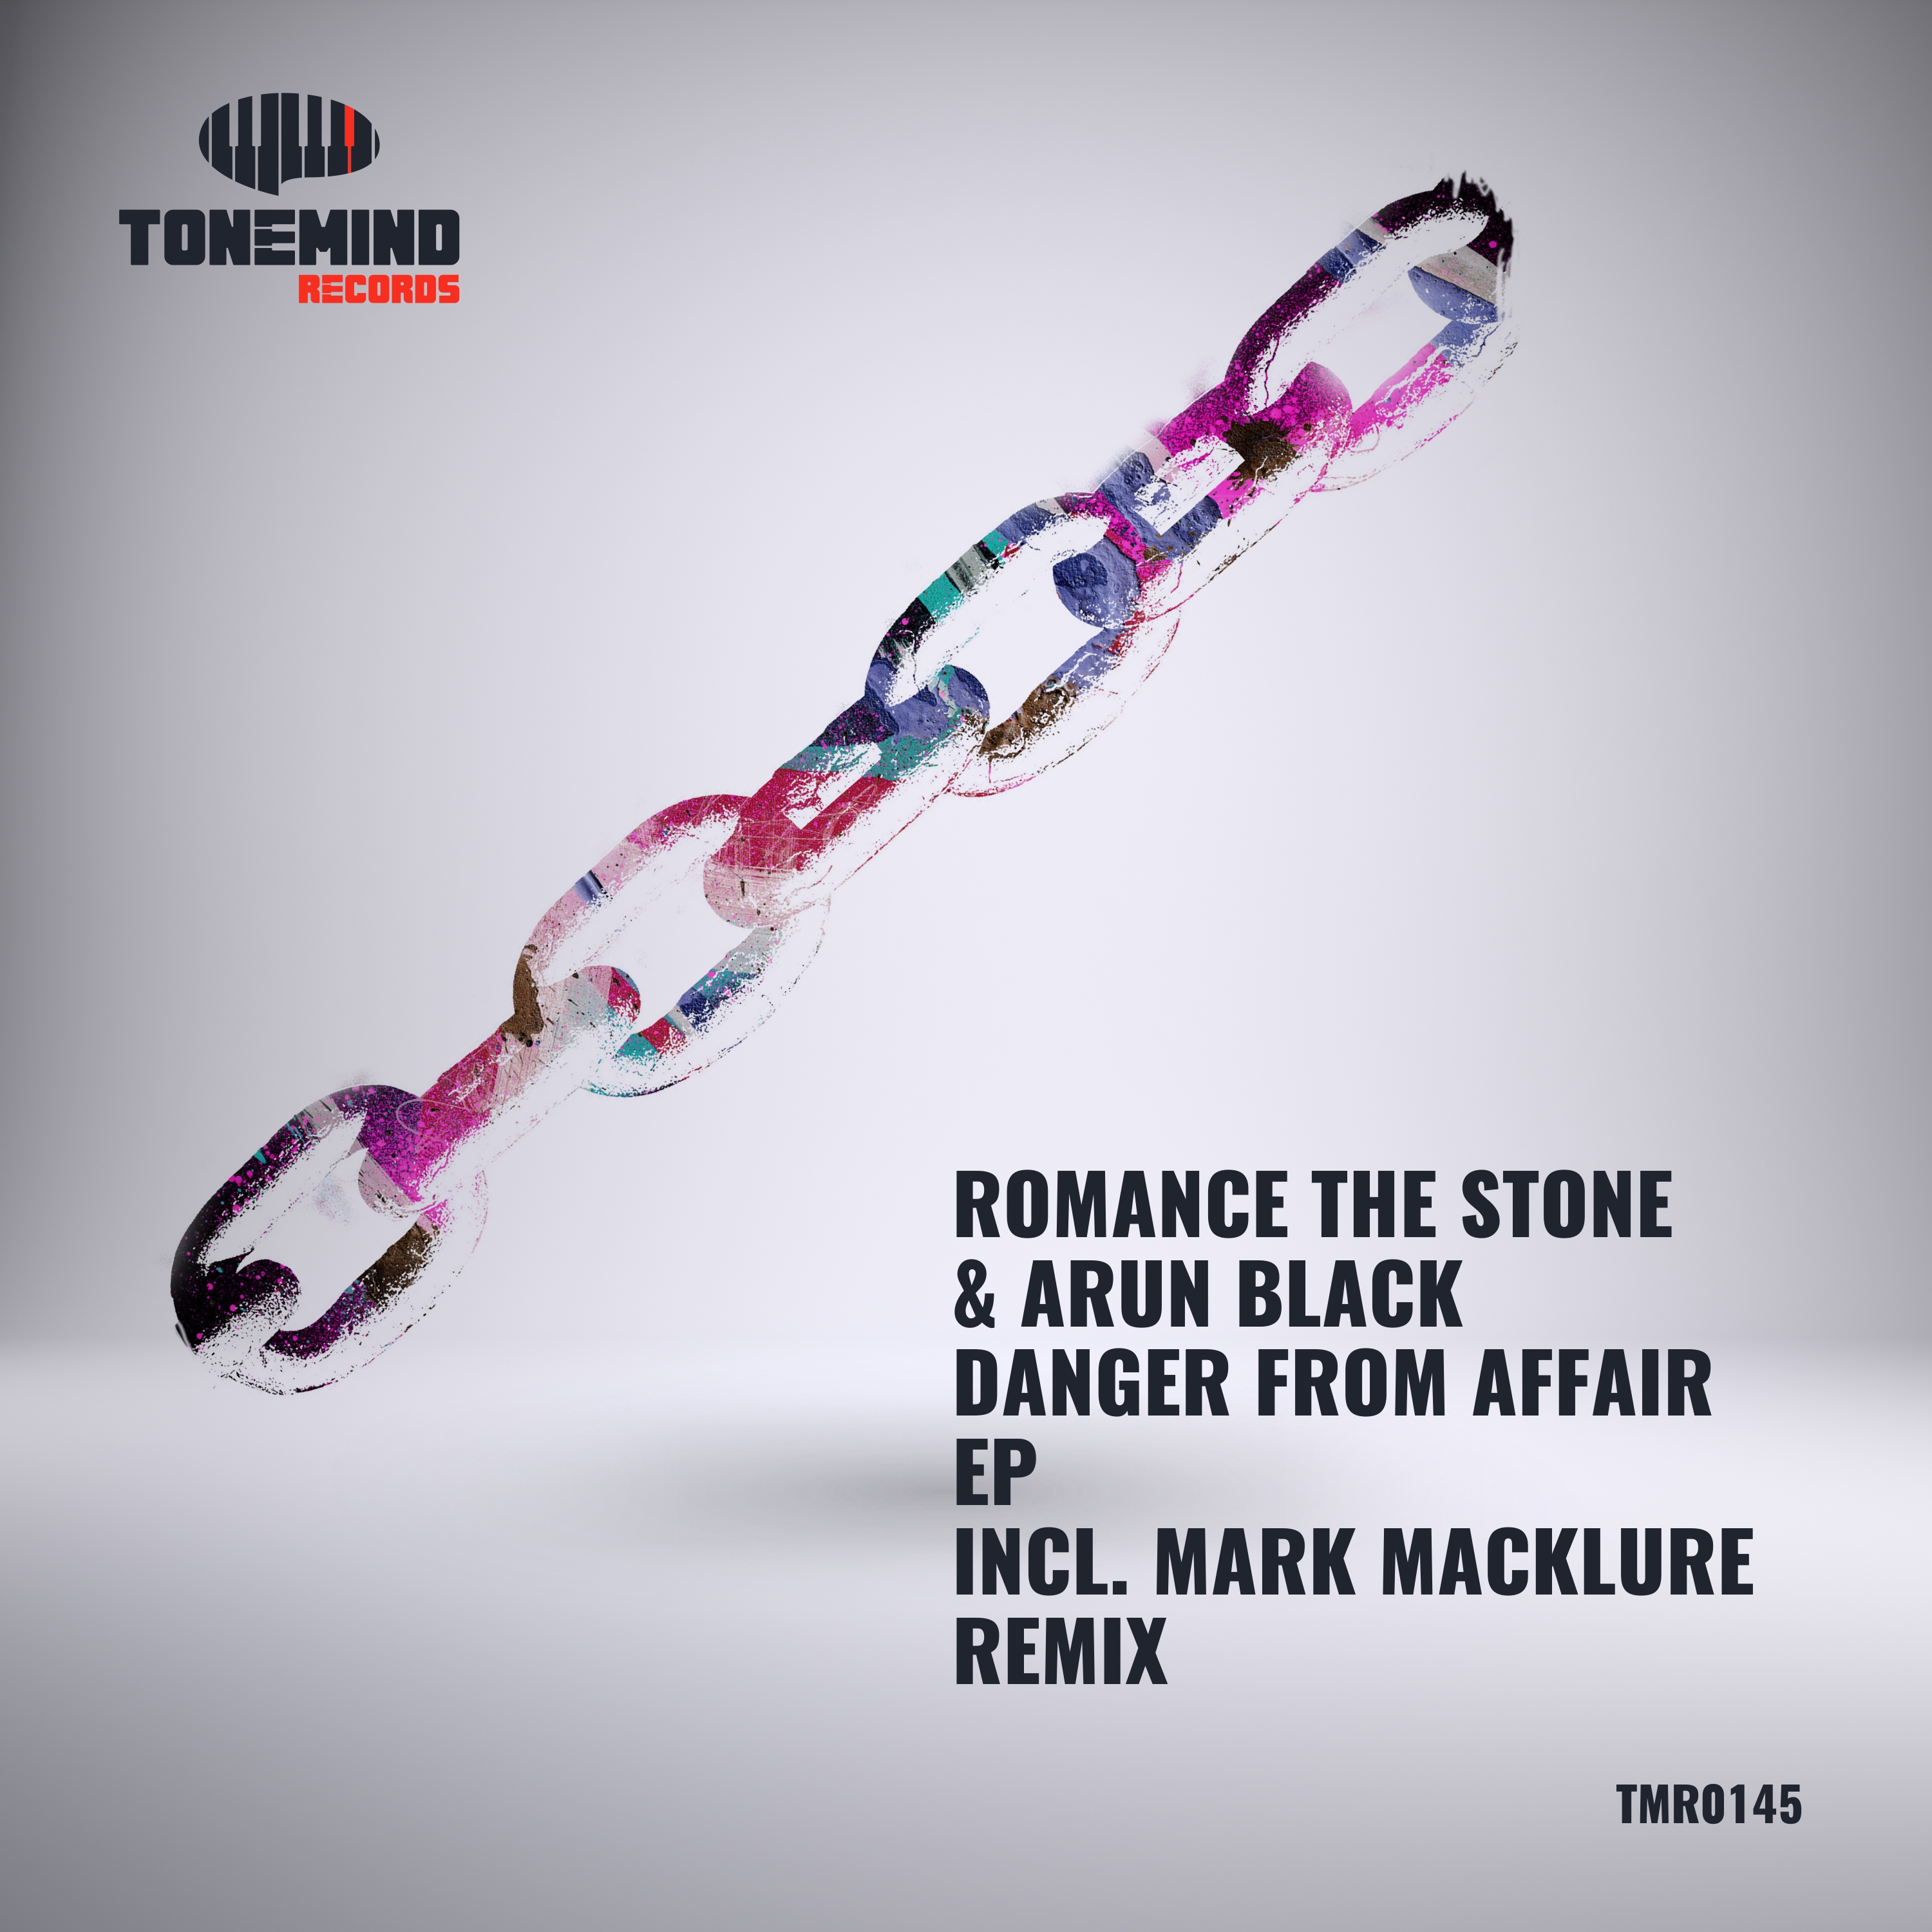 Romance The Stone & Arun Black - Danger From Afair (Mark Macklure remix)